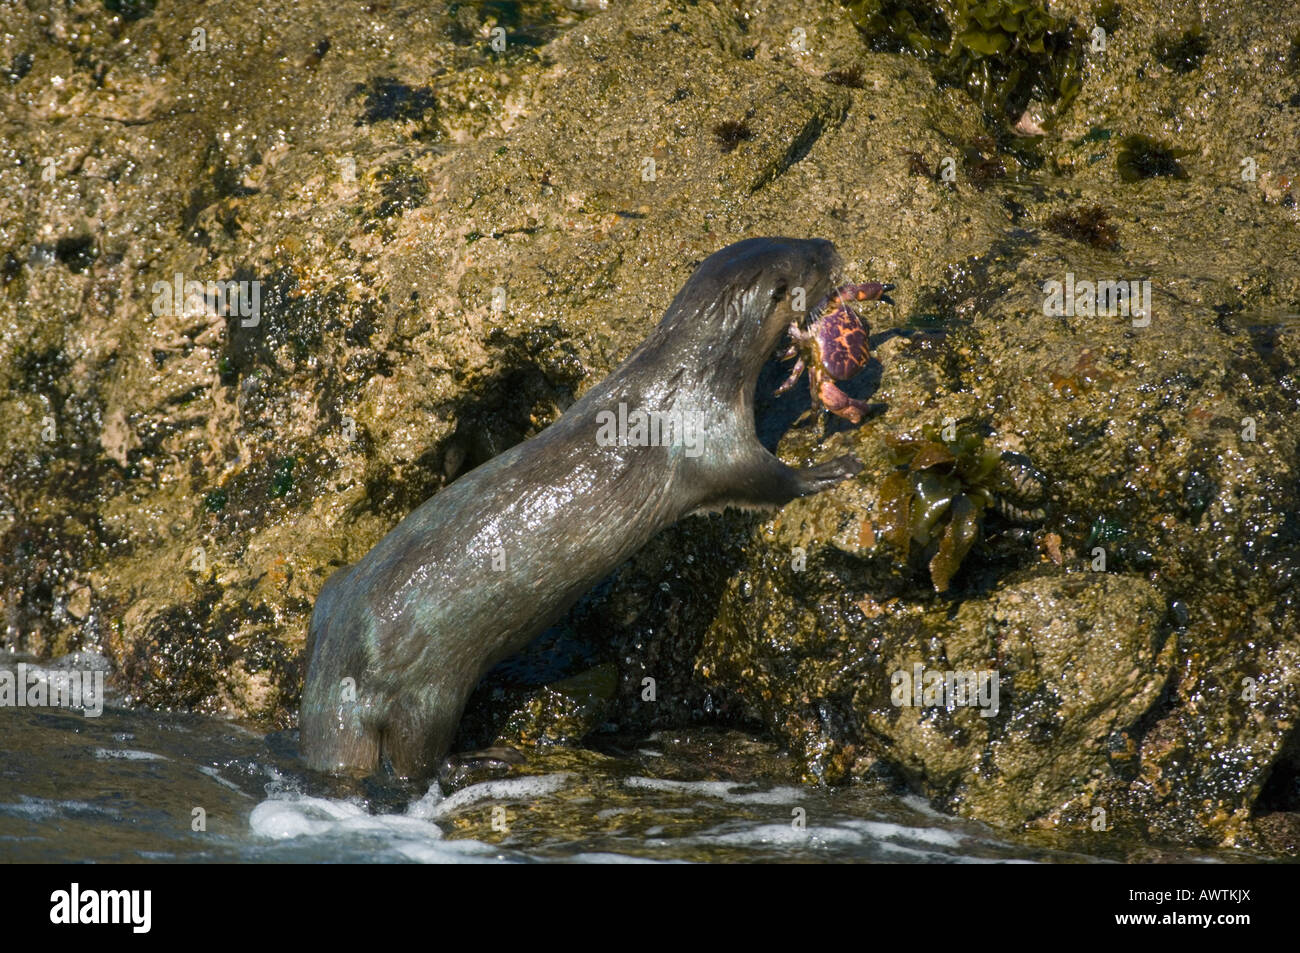 Marine Otter (Lontra felina) with crab, ENDANGERED, Isla Chiloe, CHILE - Stock Image